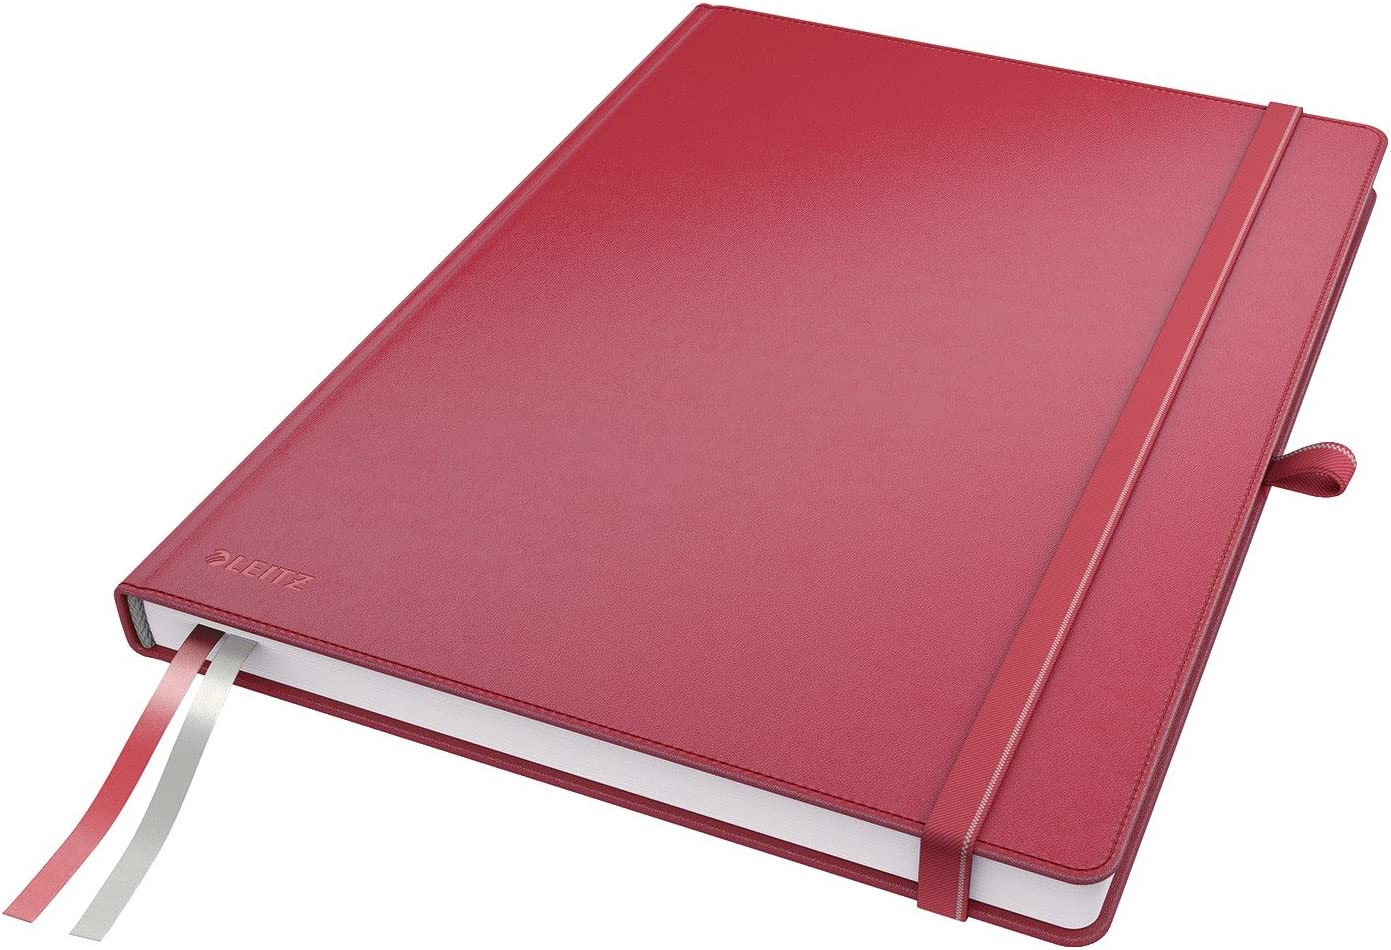 Leitz Purchase A4 Hard Cover Notebook Red Sheets Sale SALE% OFF 80 Paper wit Squared